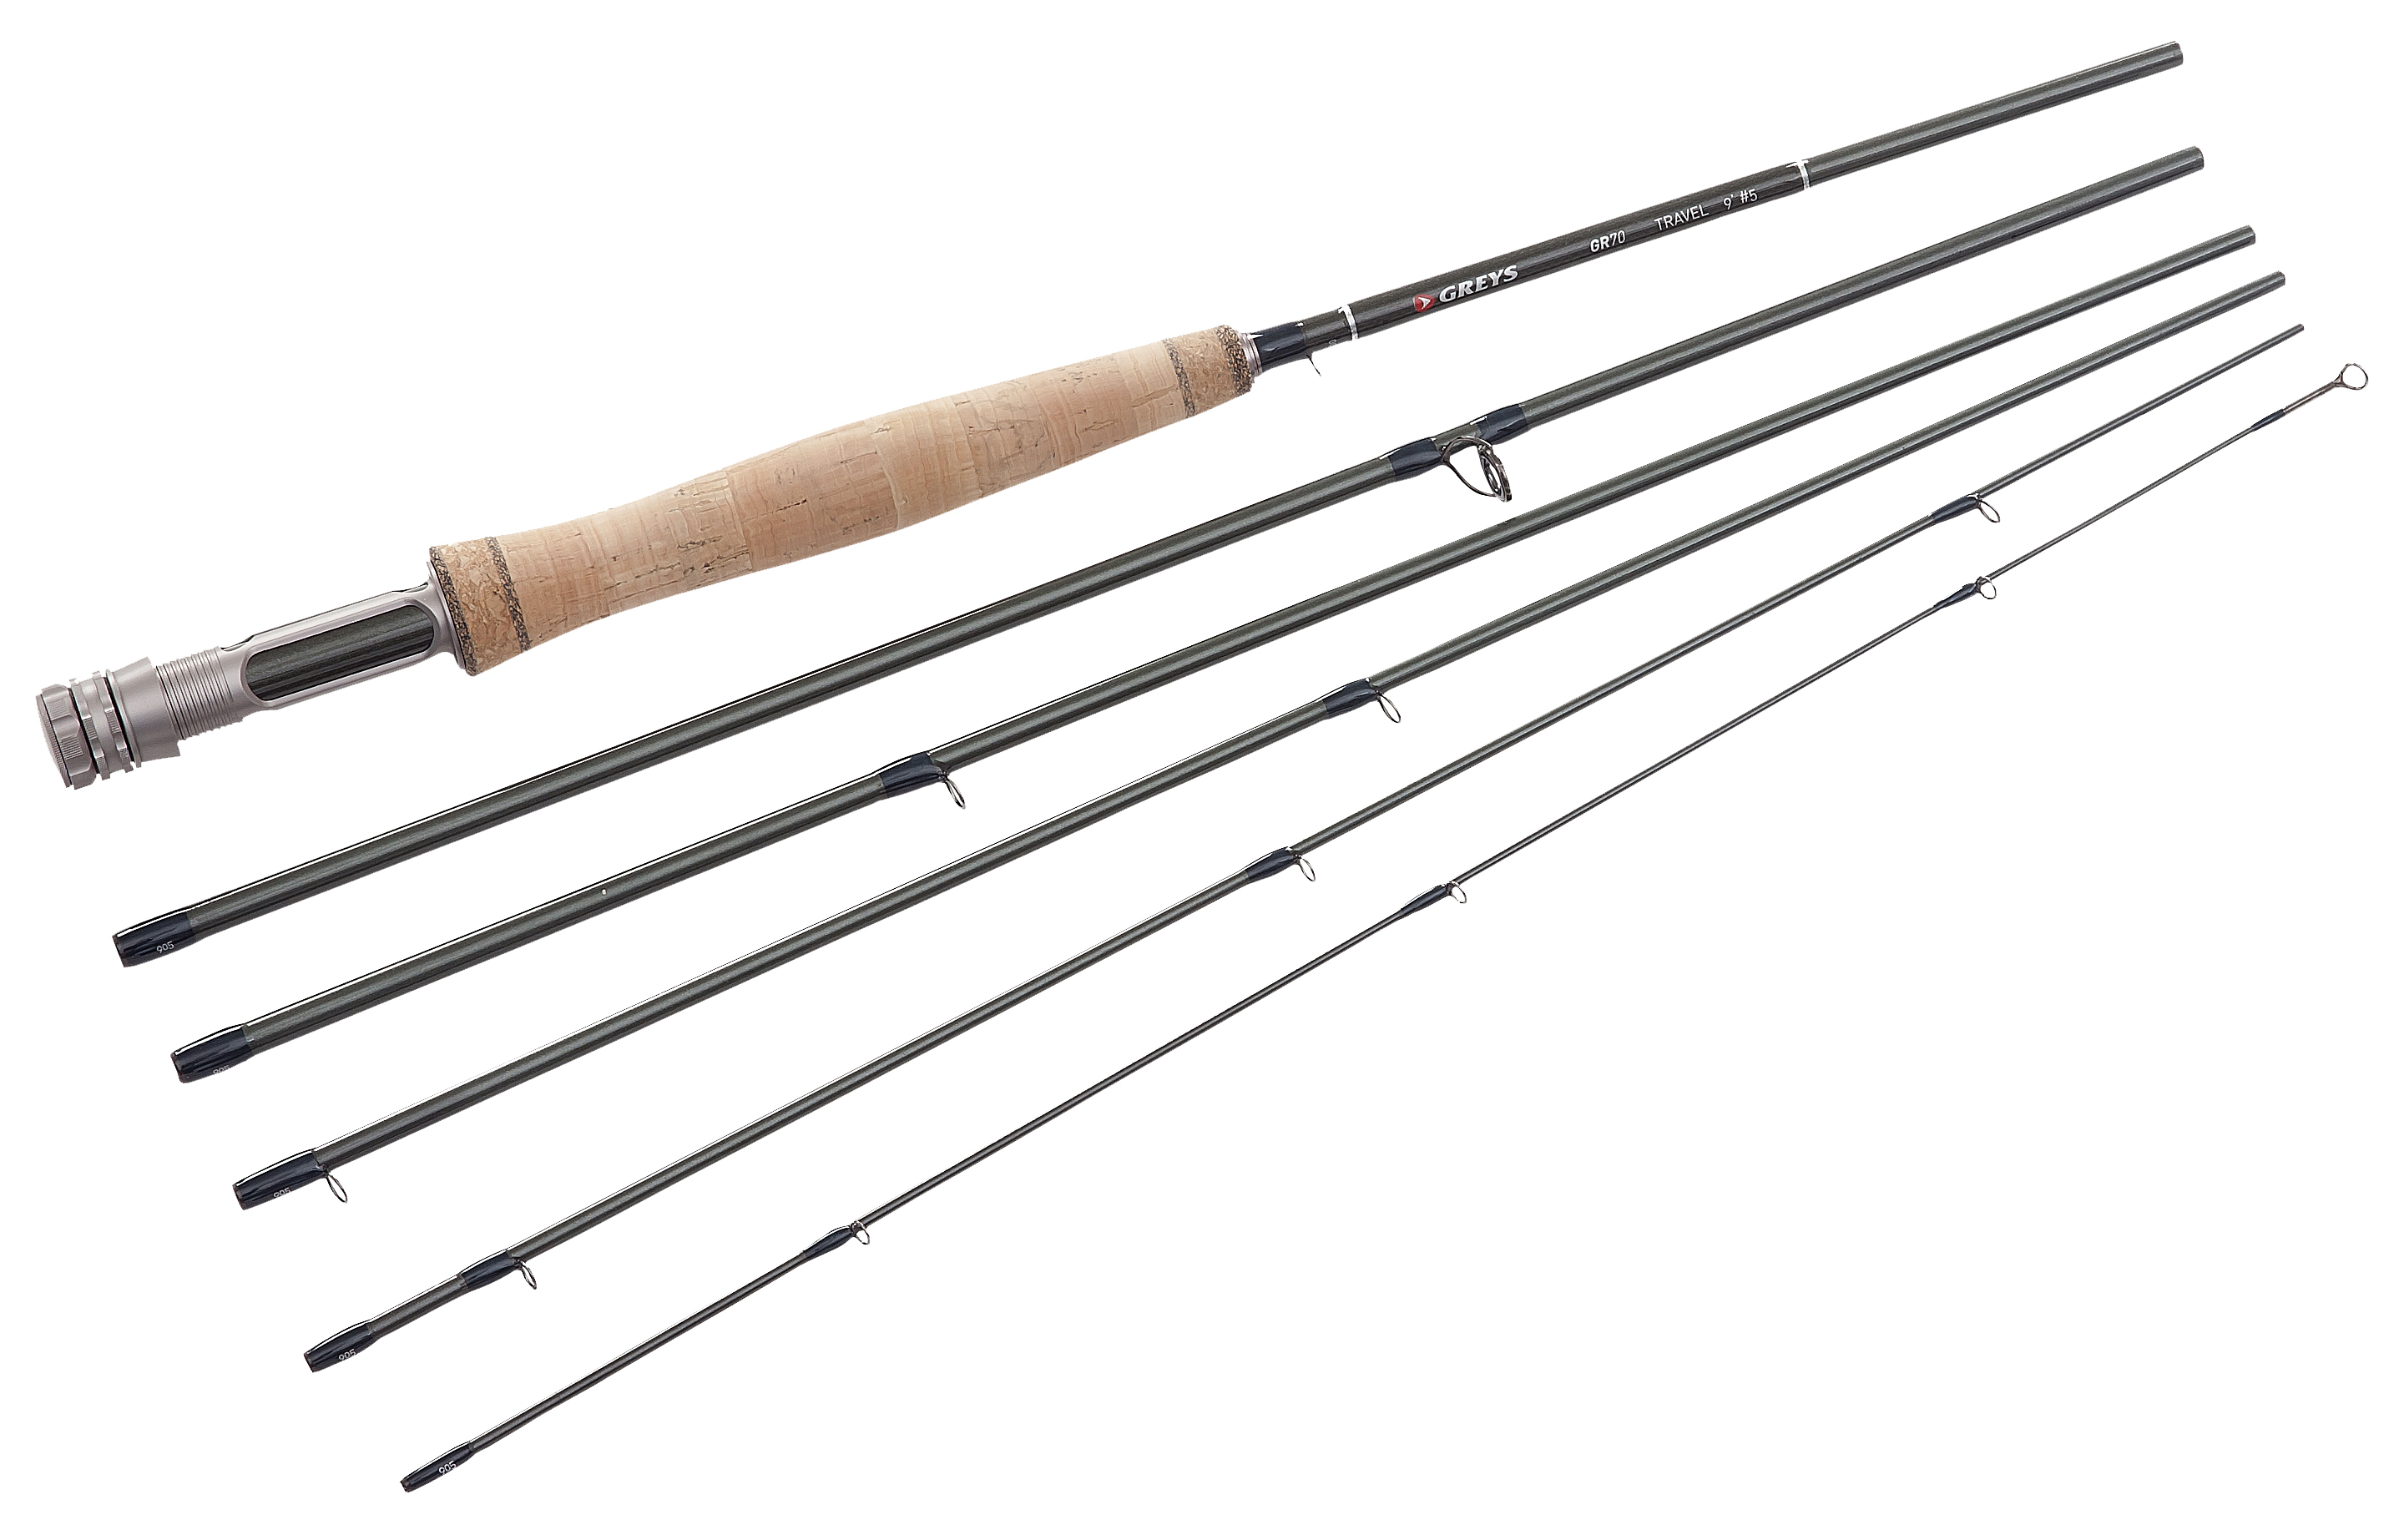 Greys gr70 single hand travel fly rod glasgow angling centre for Travel fishing pole